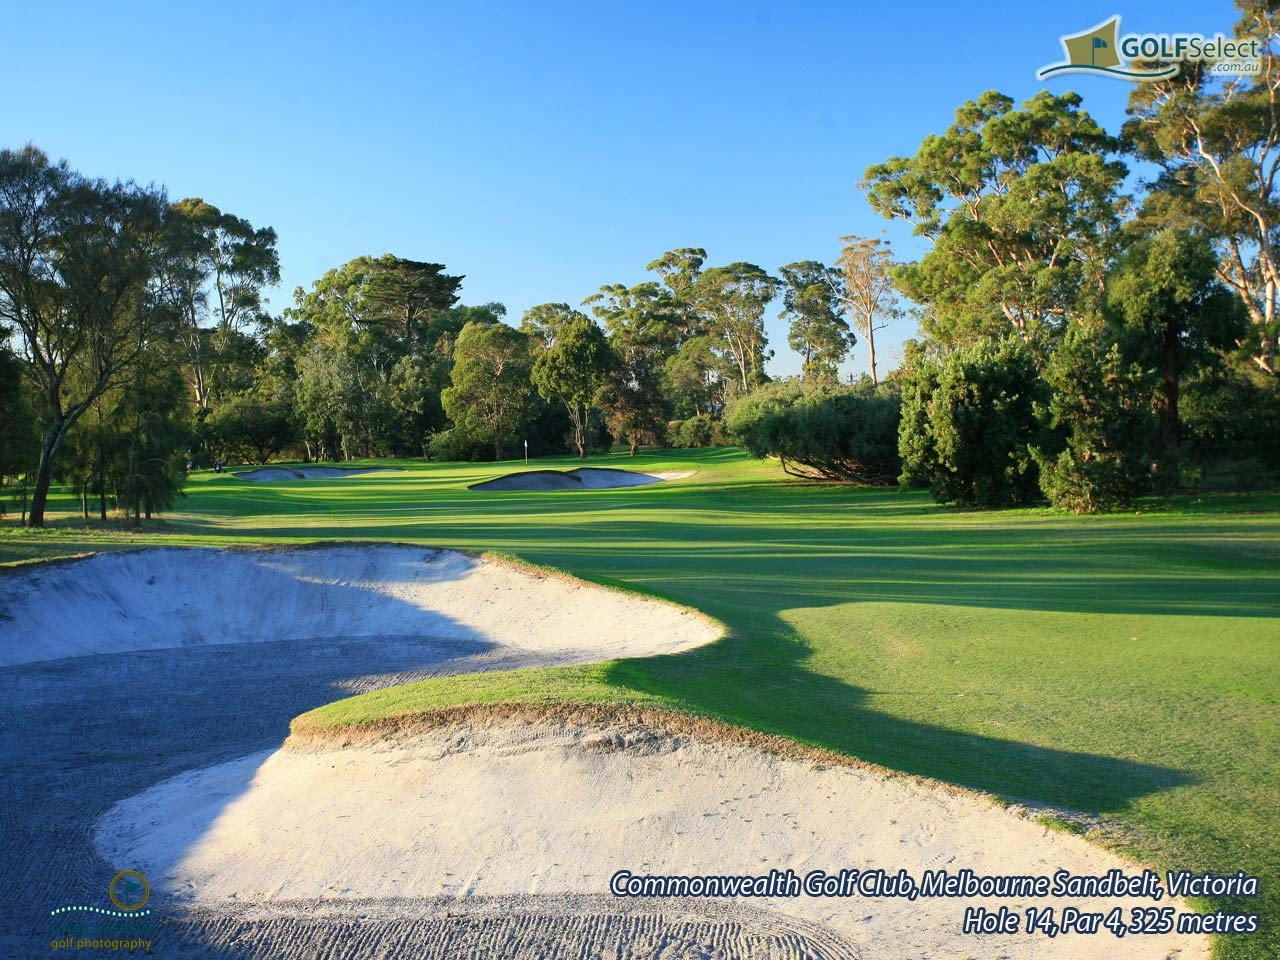 Commonwealth Golf Club Hole 14, Par 4,